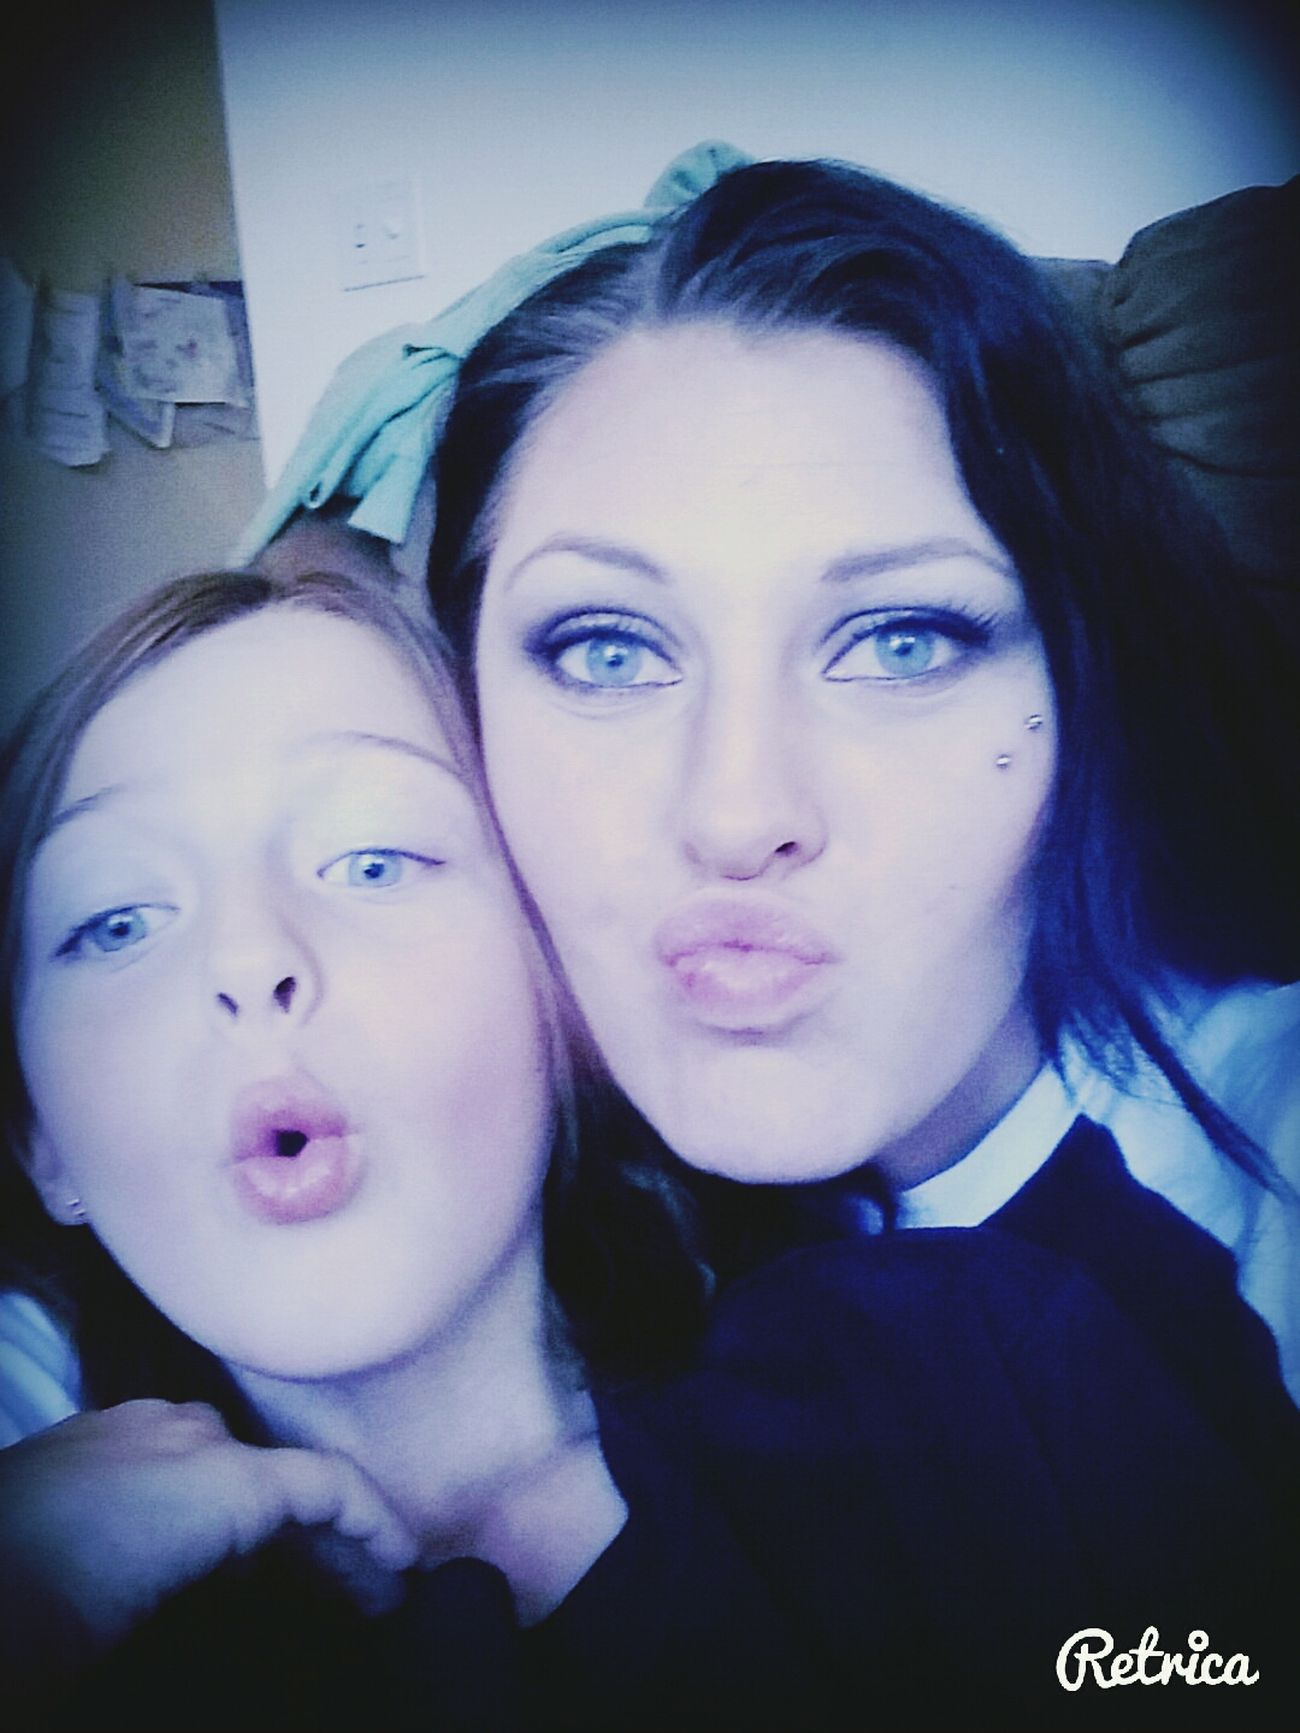 Minime Mommy Daughter Love Kissy Kissy